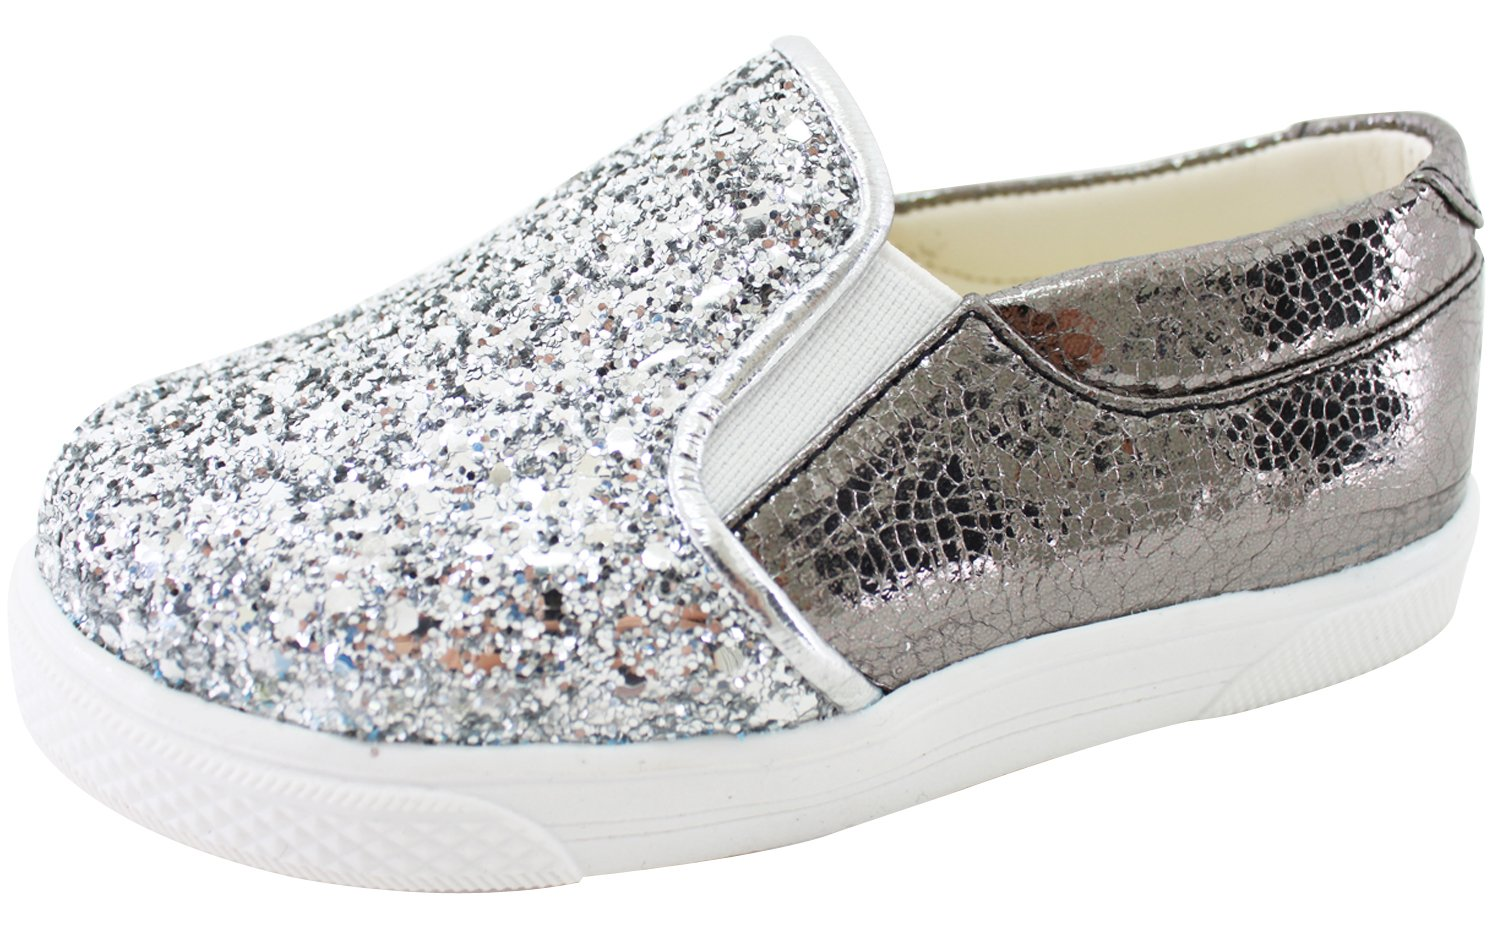 Milky Walk Boys Girls Glitter Slip On Shoes (7 M US Toddler, Silver) by Milky Walk (Image #2)